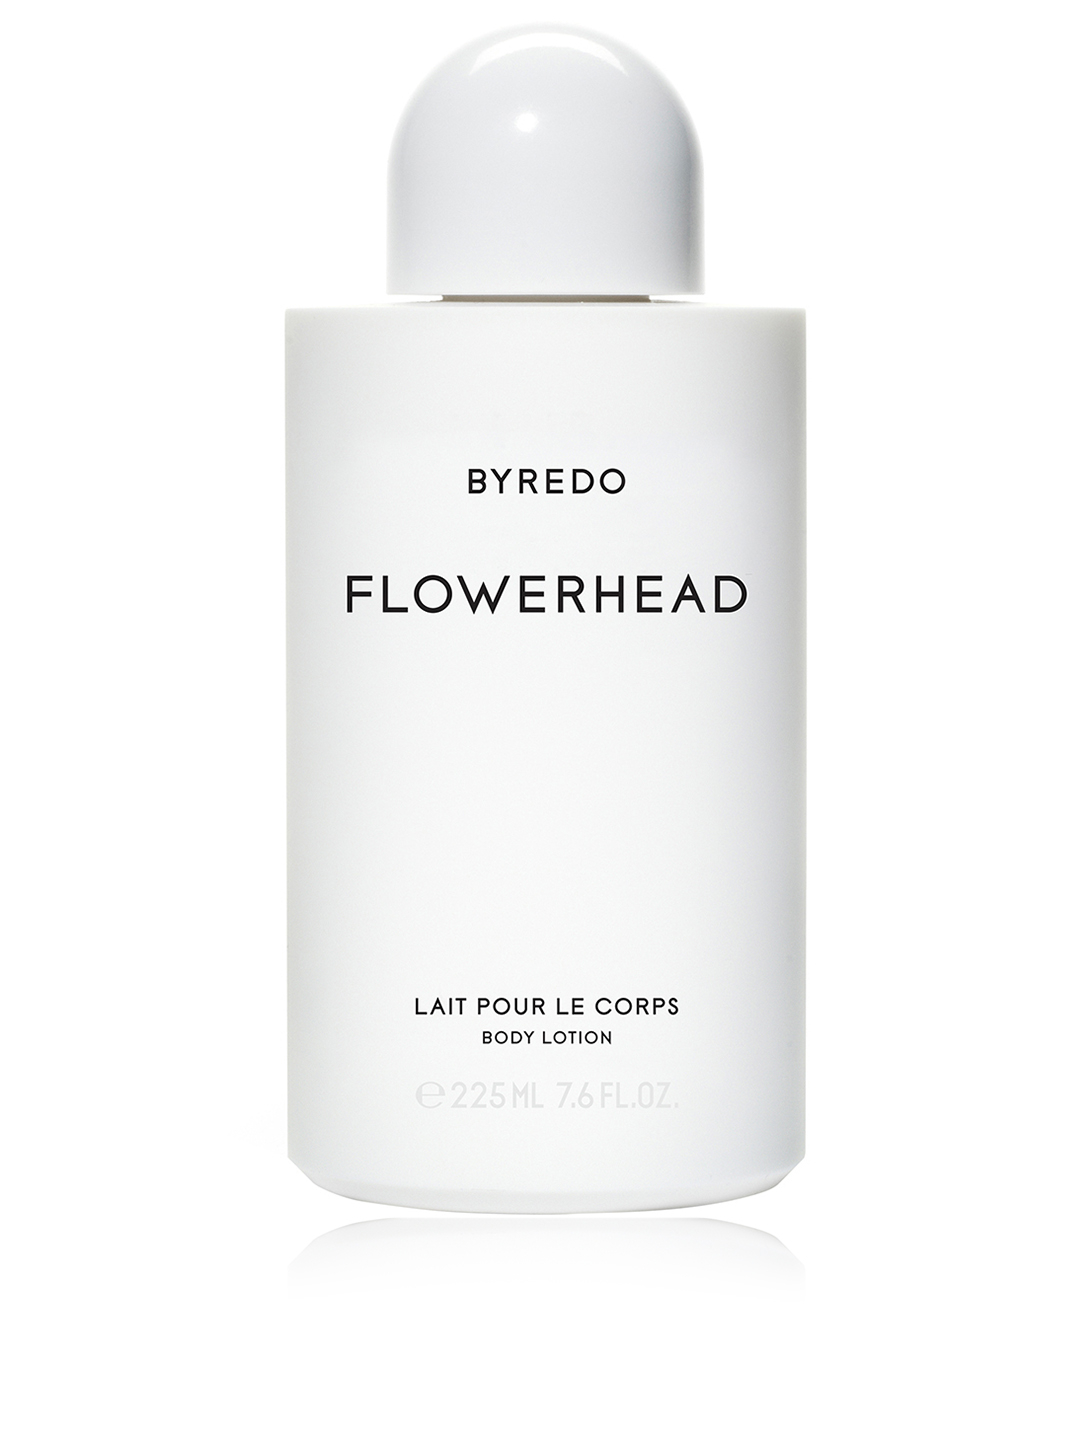 BYREDO Flowerhead Body Lotion Beauty